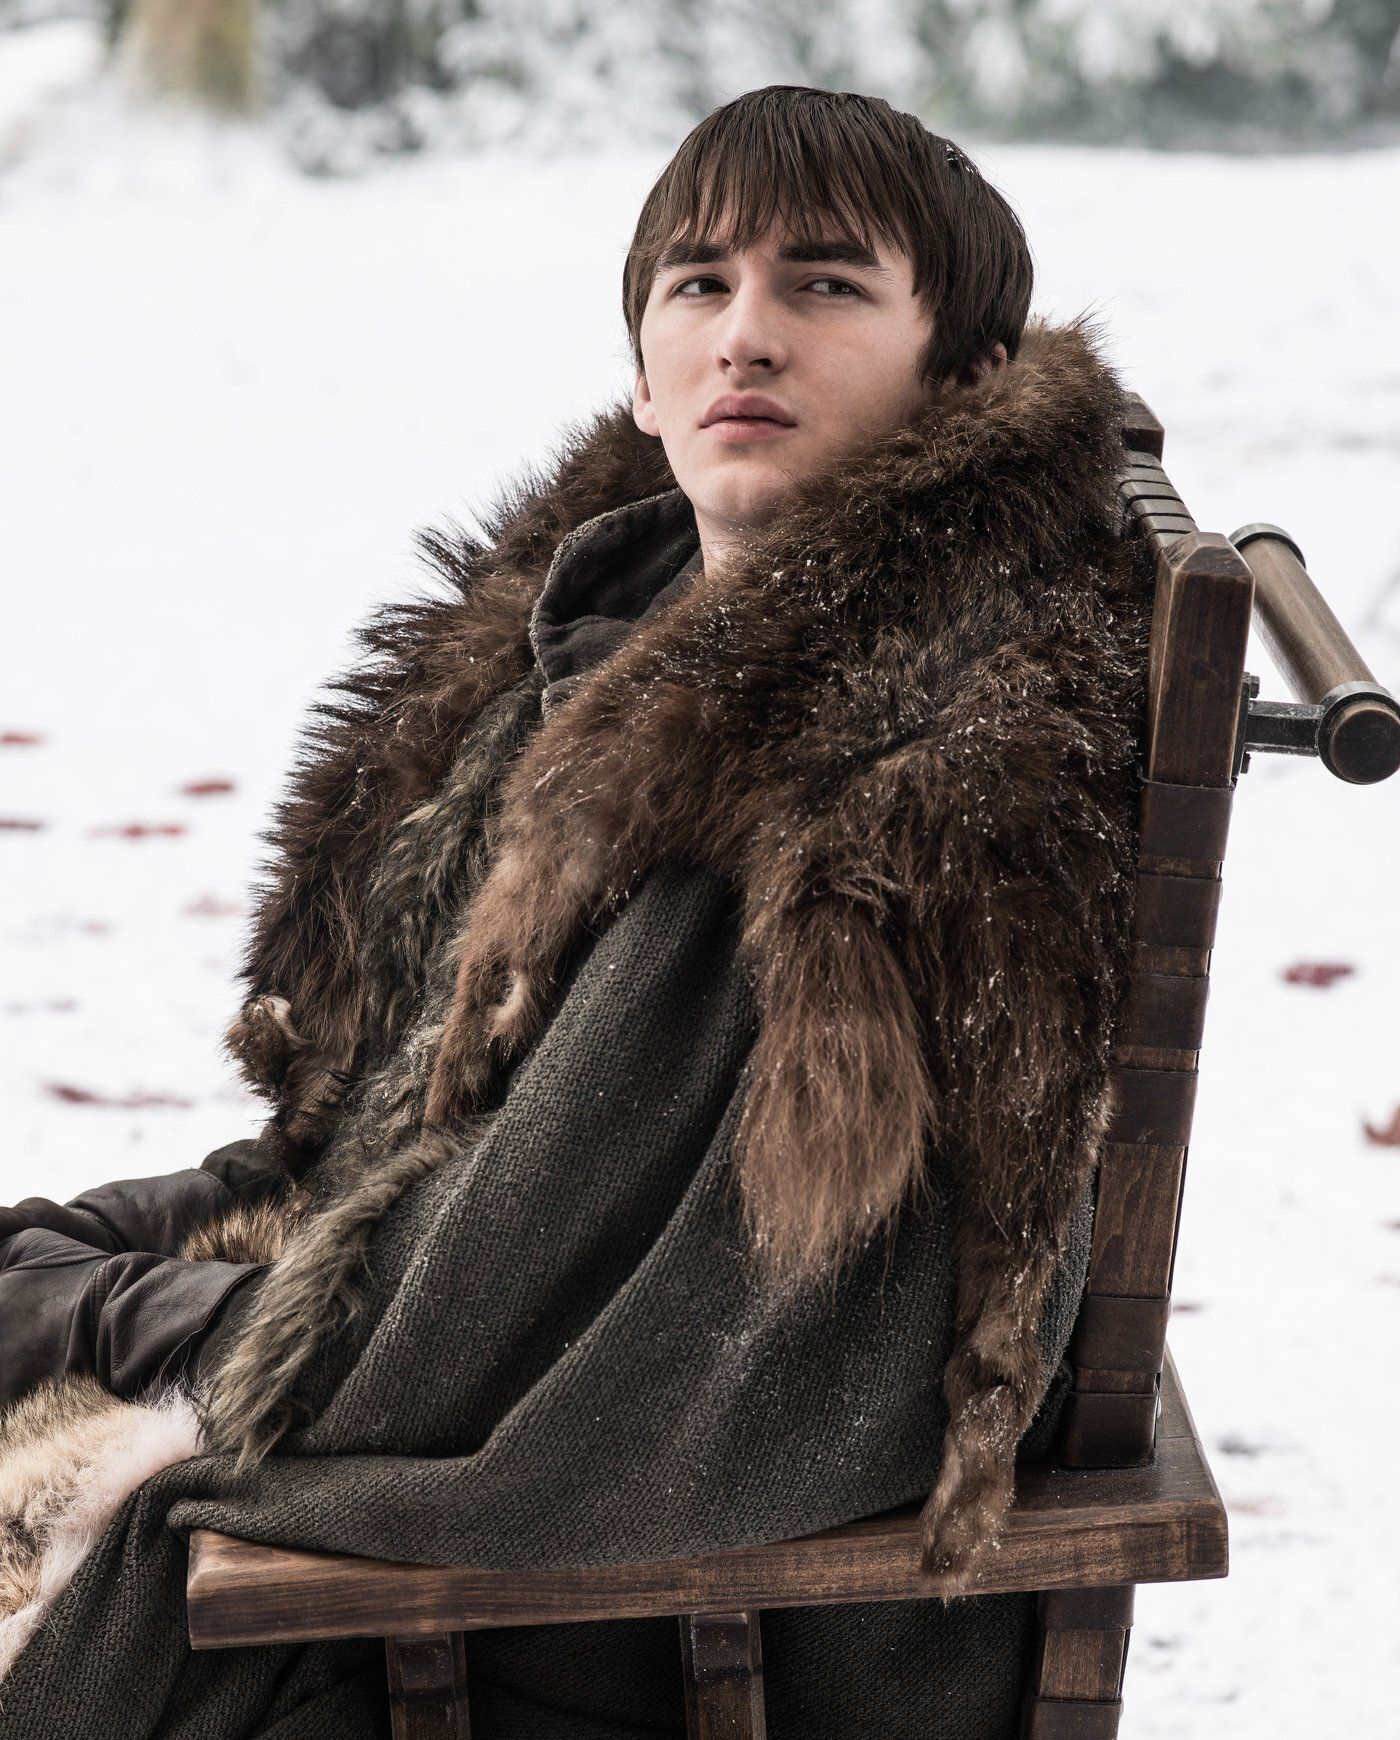 The Stars Of Game Of Thrones Have Zero Time For That 'Insulting And Absurd' Fan